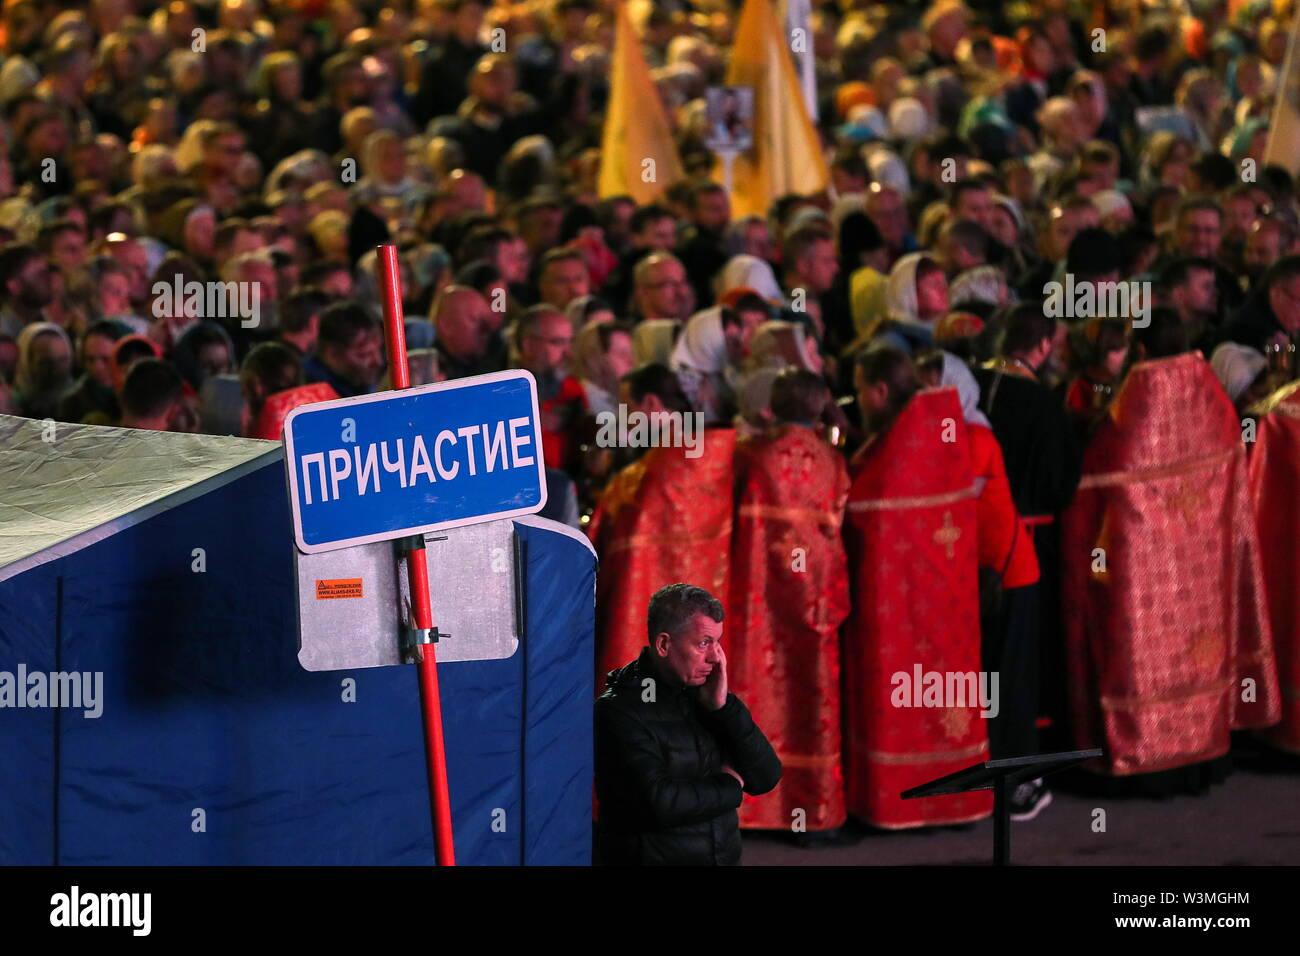 Yekaterinburg, Russia. 17th July, 2019. YEKATERINBURG, RUSSIA - JULY 17, 2019: Believers by the Church of All Saints in Yekaterinburg ahead of a religious procession in memory of the Russian royal family. The church is built on the site of the Ipatiev House where Emperor Nicholas II of Russia, his wife Alexandra Feodorovna, their five children Olga, Tatiana, Maria, Anastasia, and Alexei, along with physician Yevgeny Botkin and three servants were executed on July 17, 1918. Donat Sorokin/TASS Credit: ITAR-TASS News Agency/Alamy Live News - Stock Image